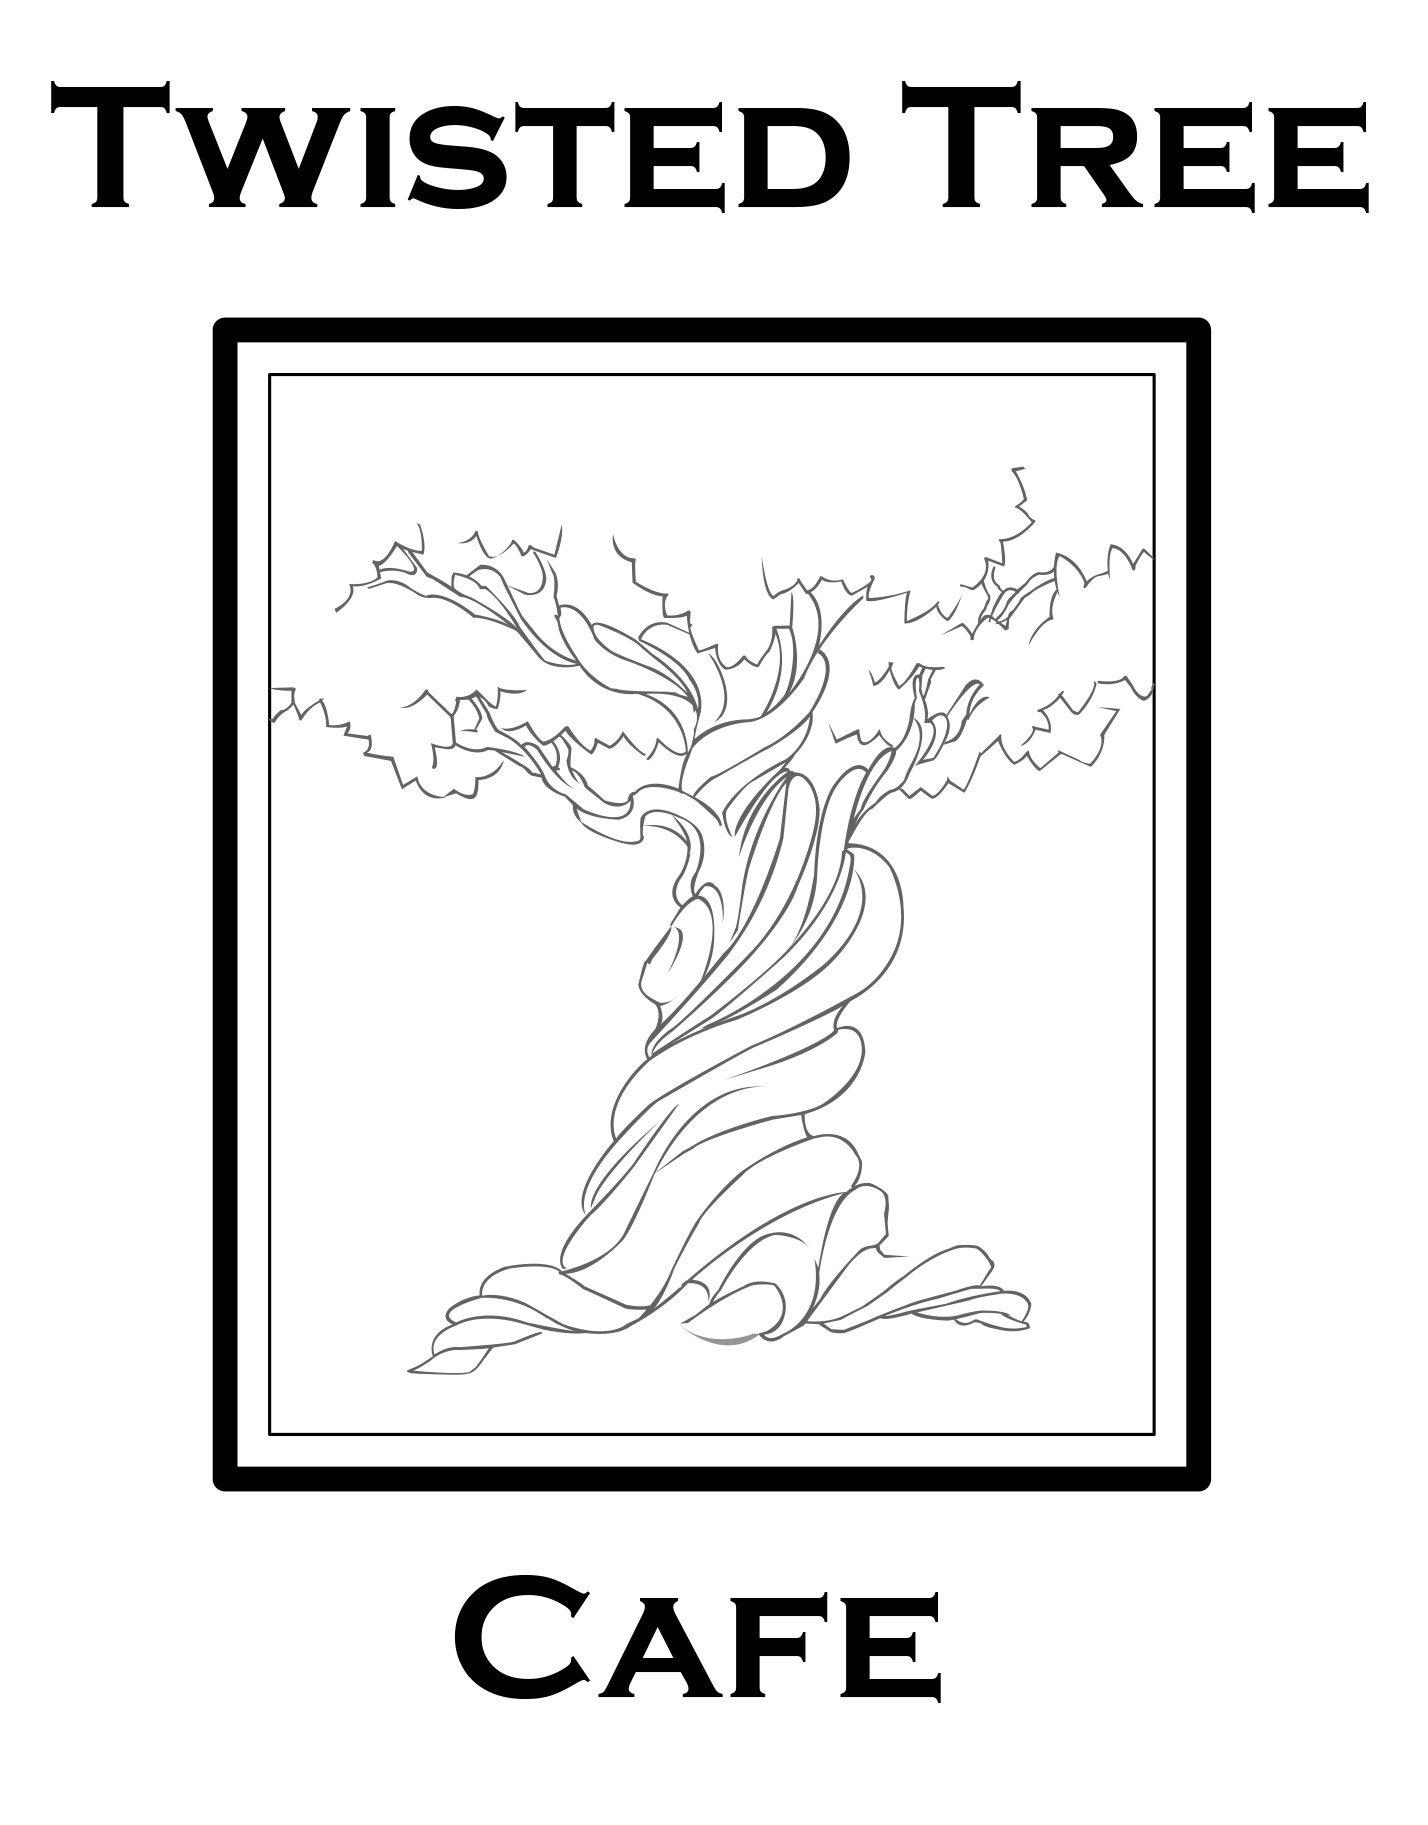 The Twisted Tree Cafe